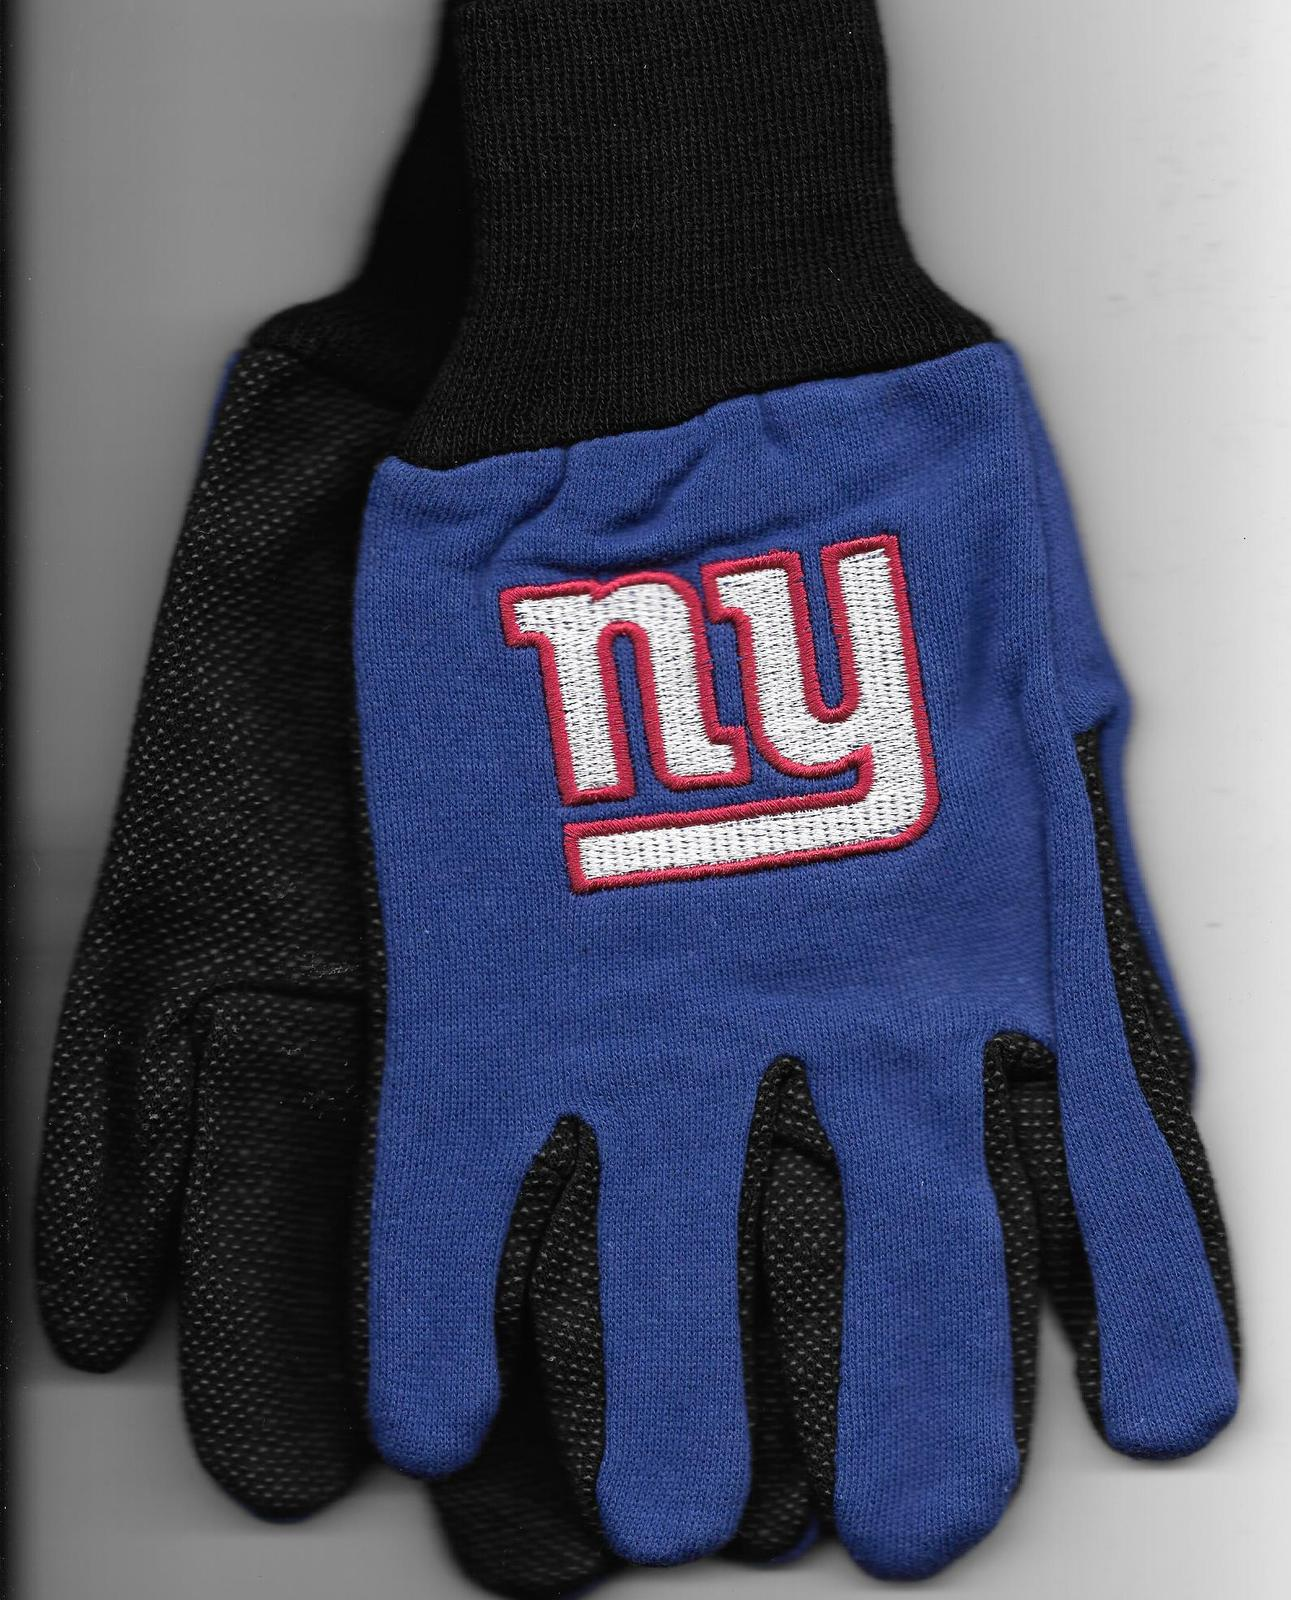 ed77eb169 Giants gloves t12. Giants gloves t12. New York Giants team Sport Utility  Gloves blue black garden NFL Football TG1